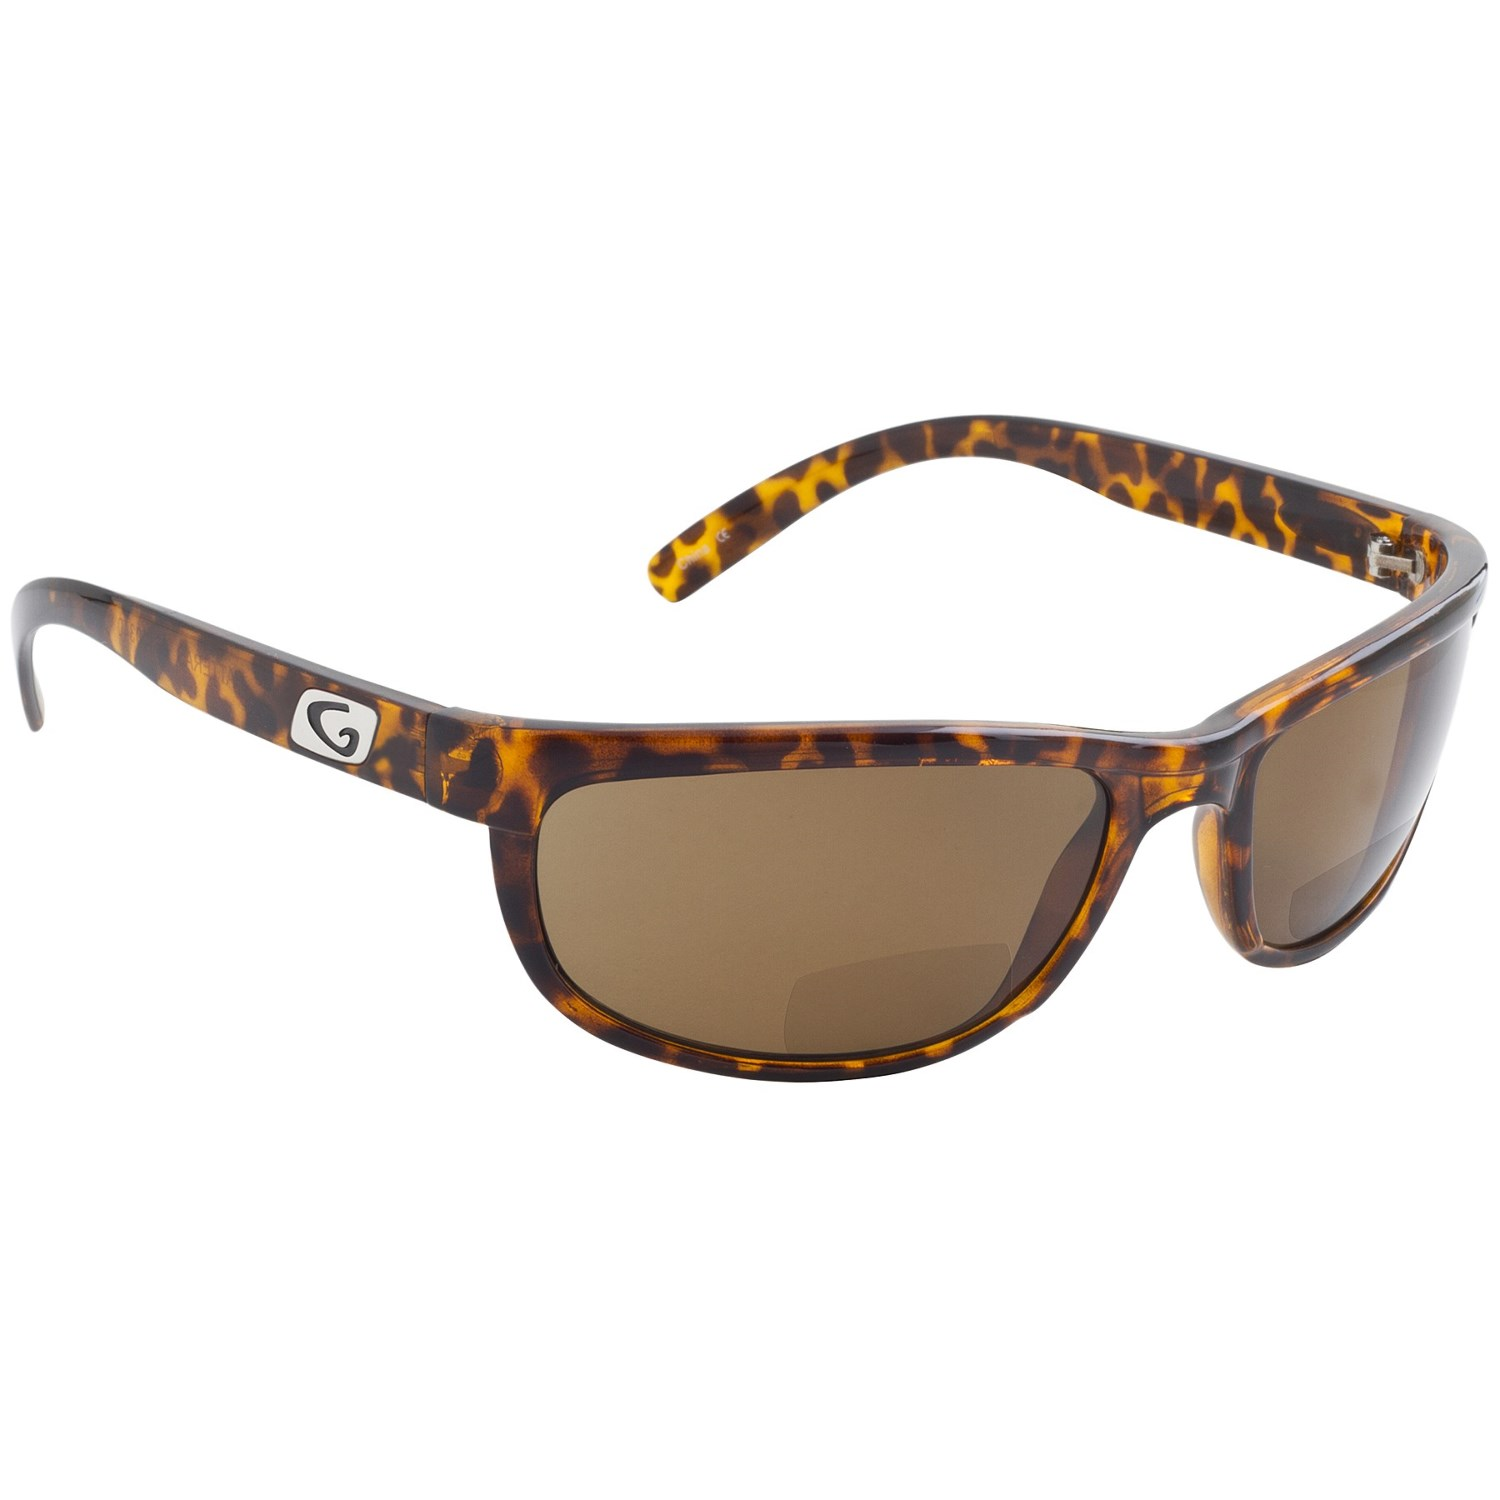 f55af47bfc Sunglasses Polarized Bifocal « Heritage Malta